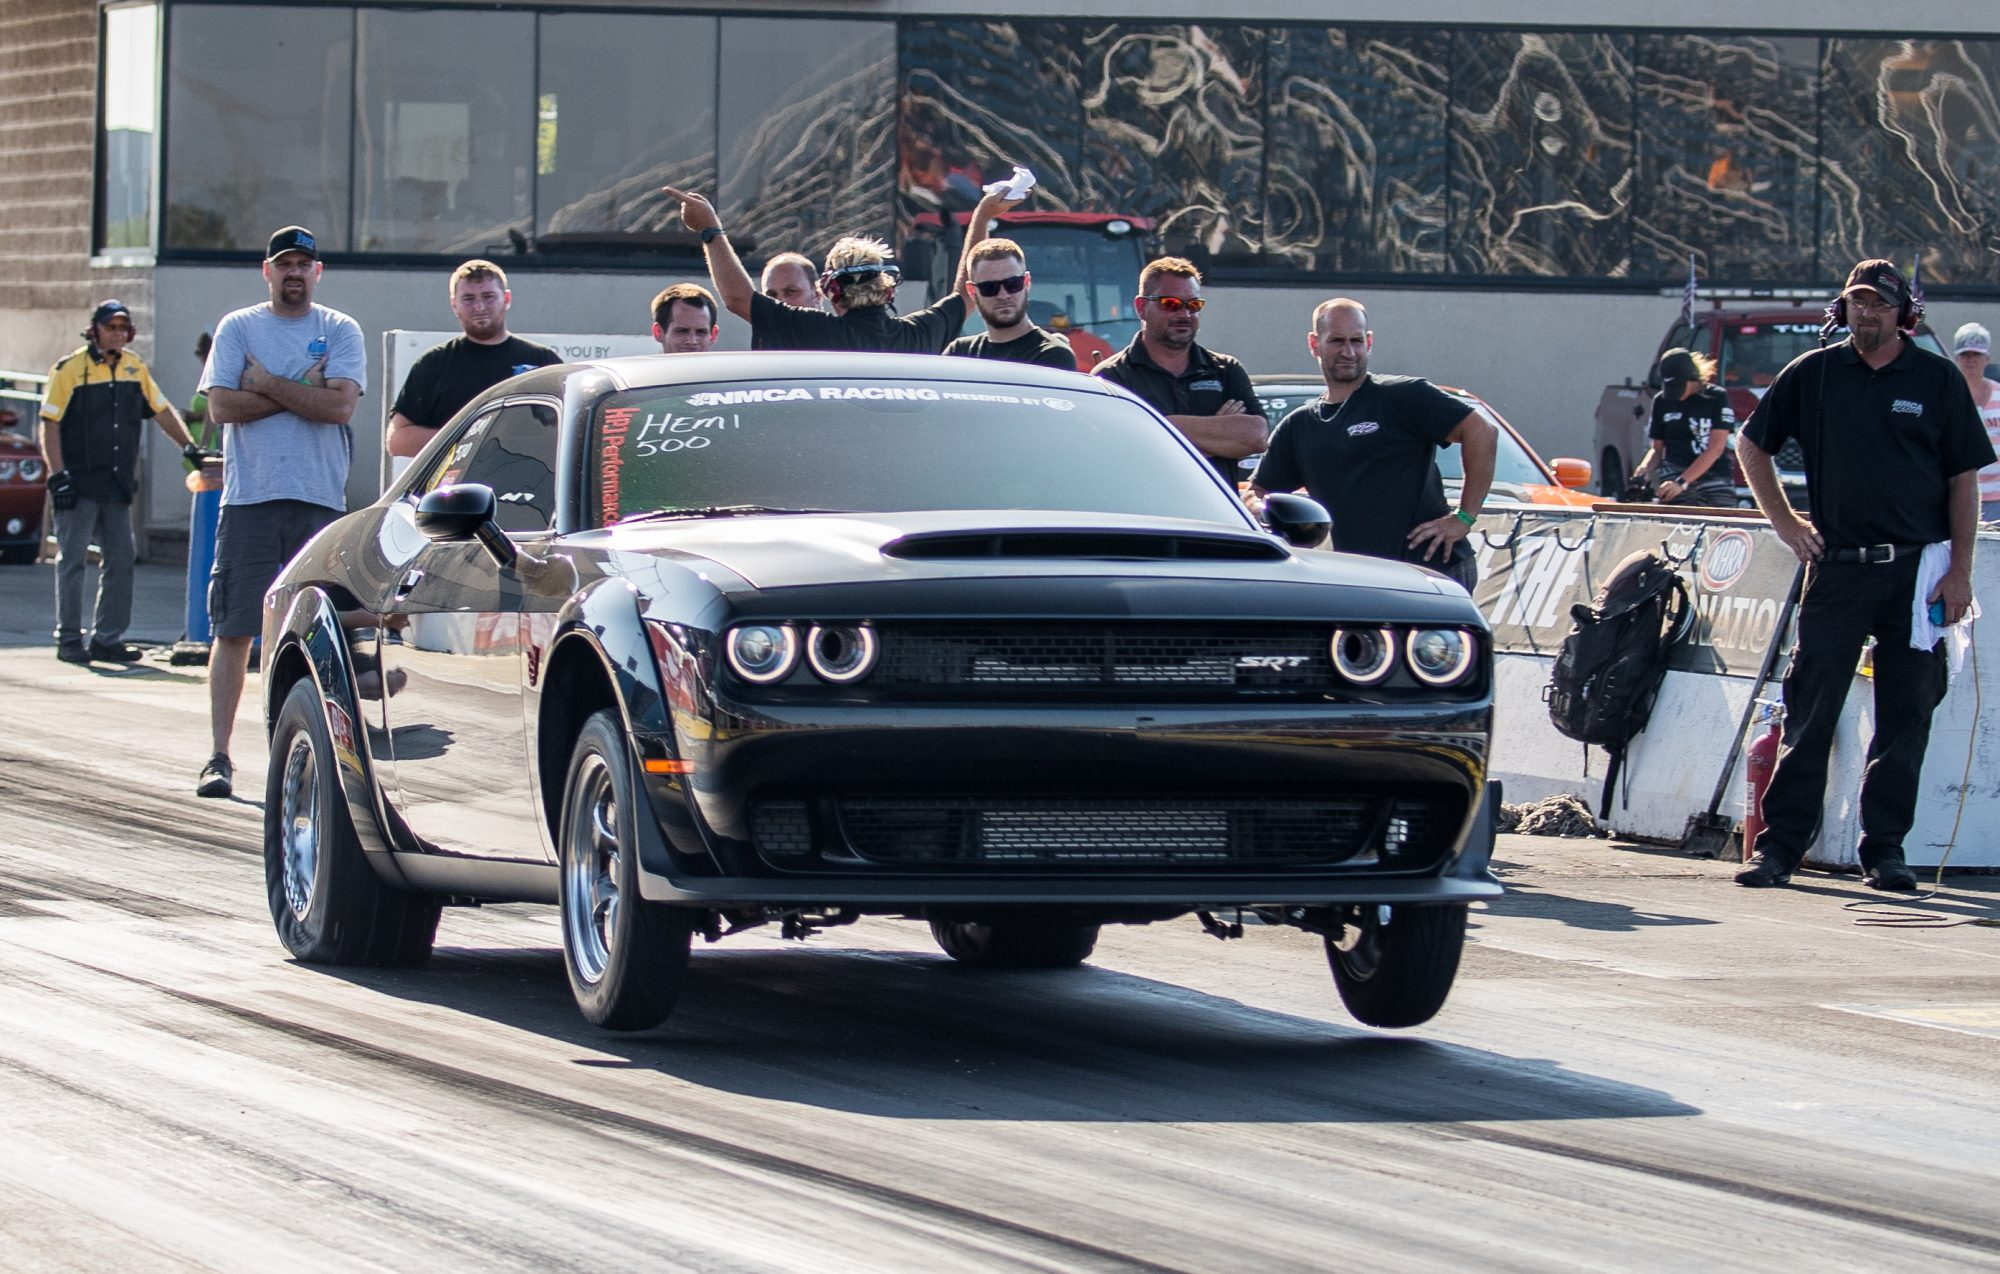 dodge vehicle on two wheels at the starting line of a drag strip